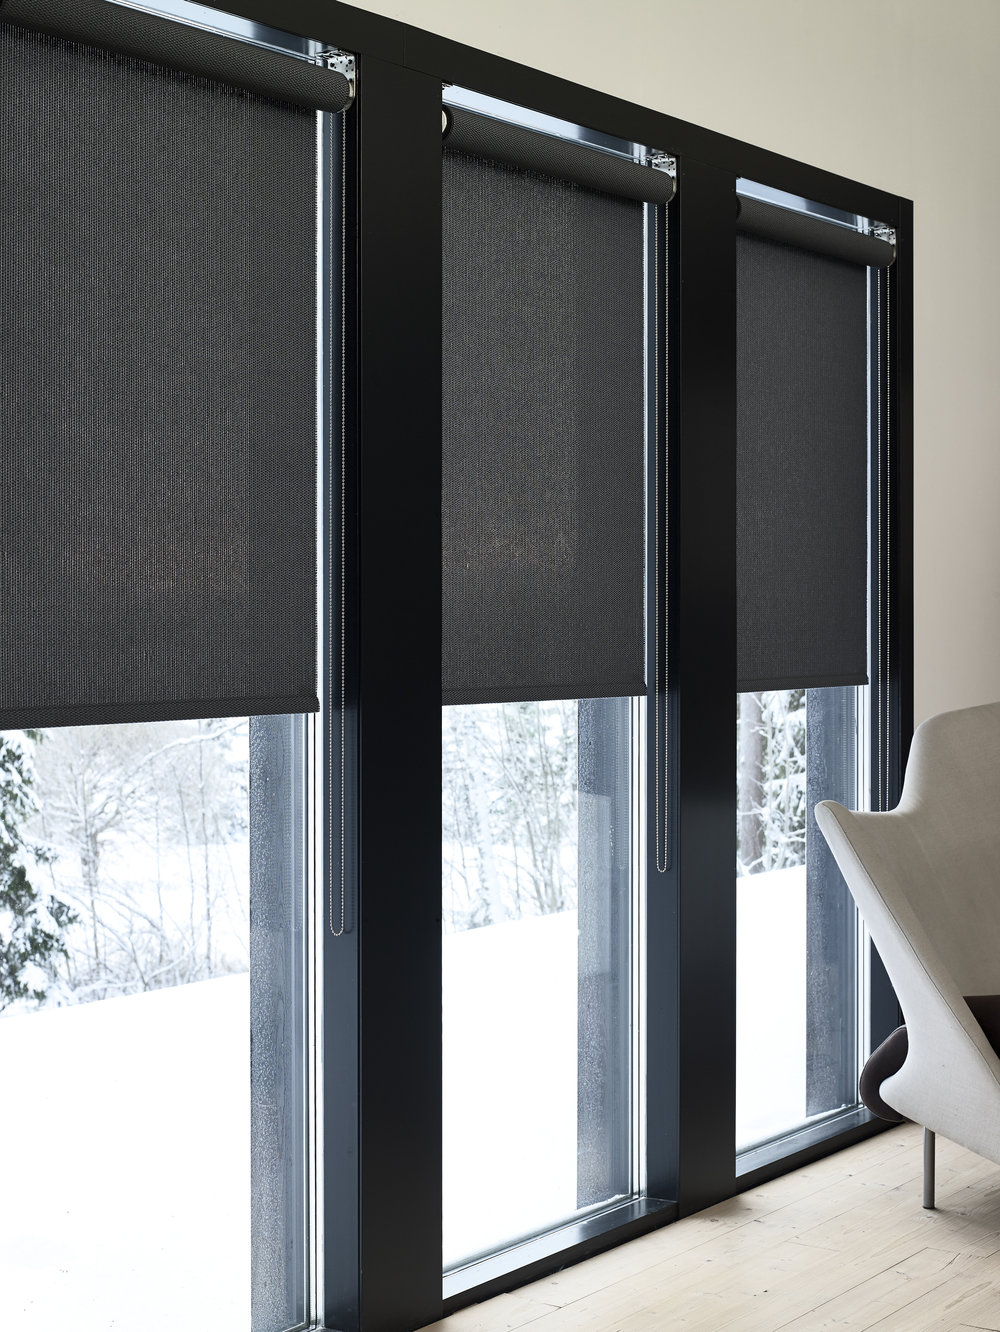 21199  Morning  black roller blinds